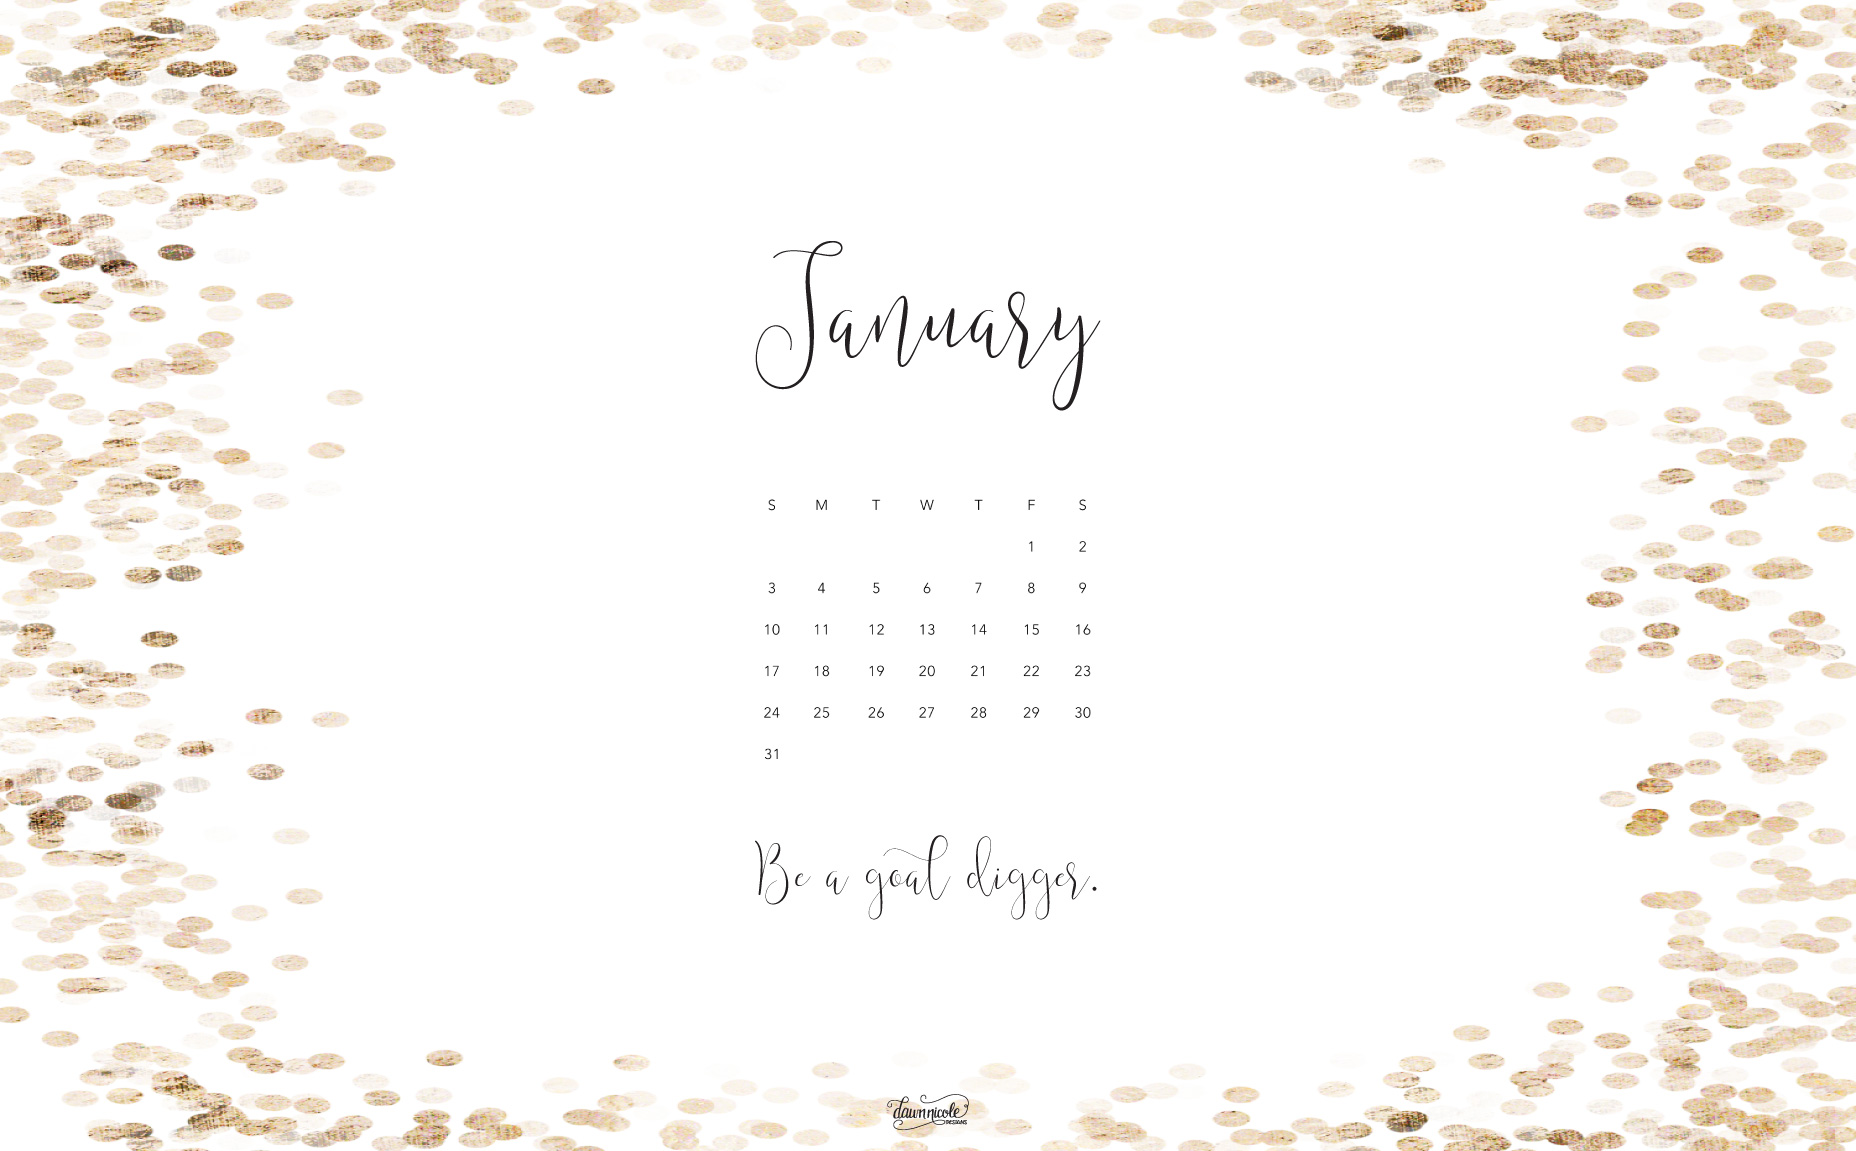 Fr fr free january 2017 desktop wallpaper -  Wallpaper 5 January2016 Calendar Desktop Download